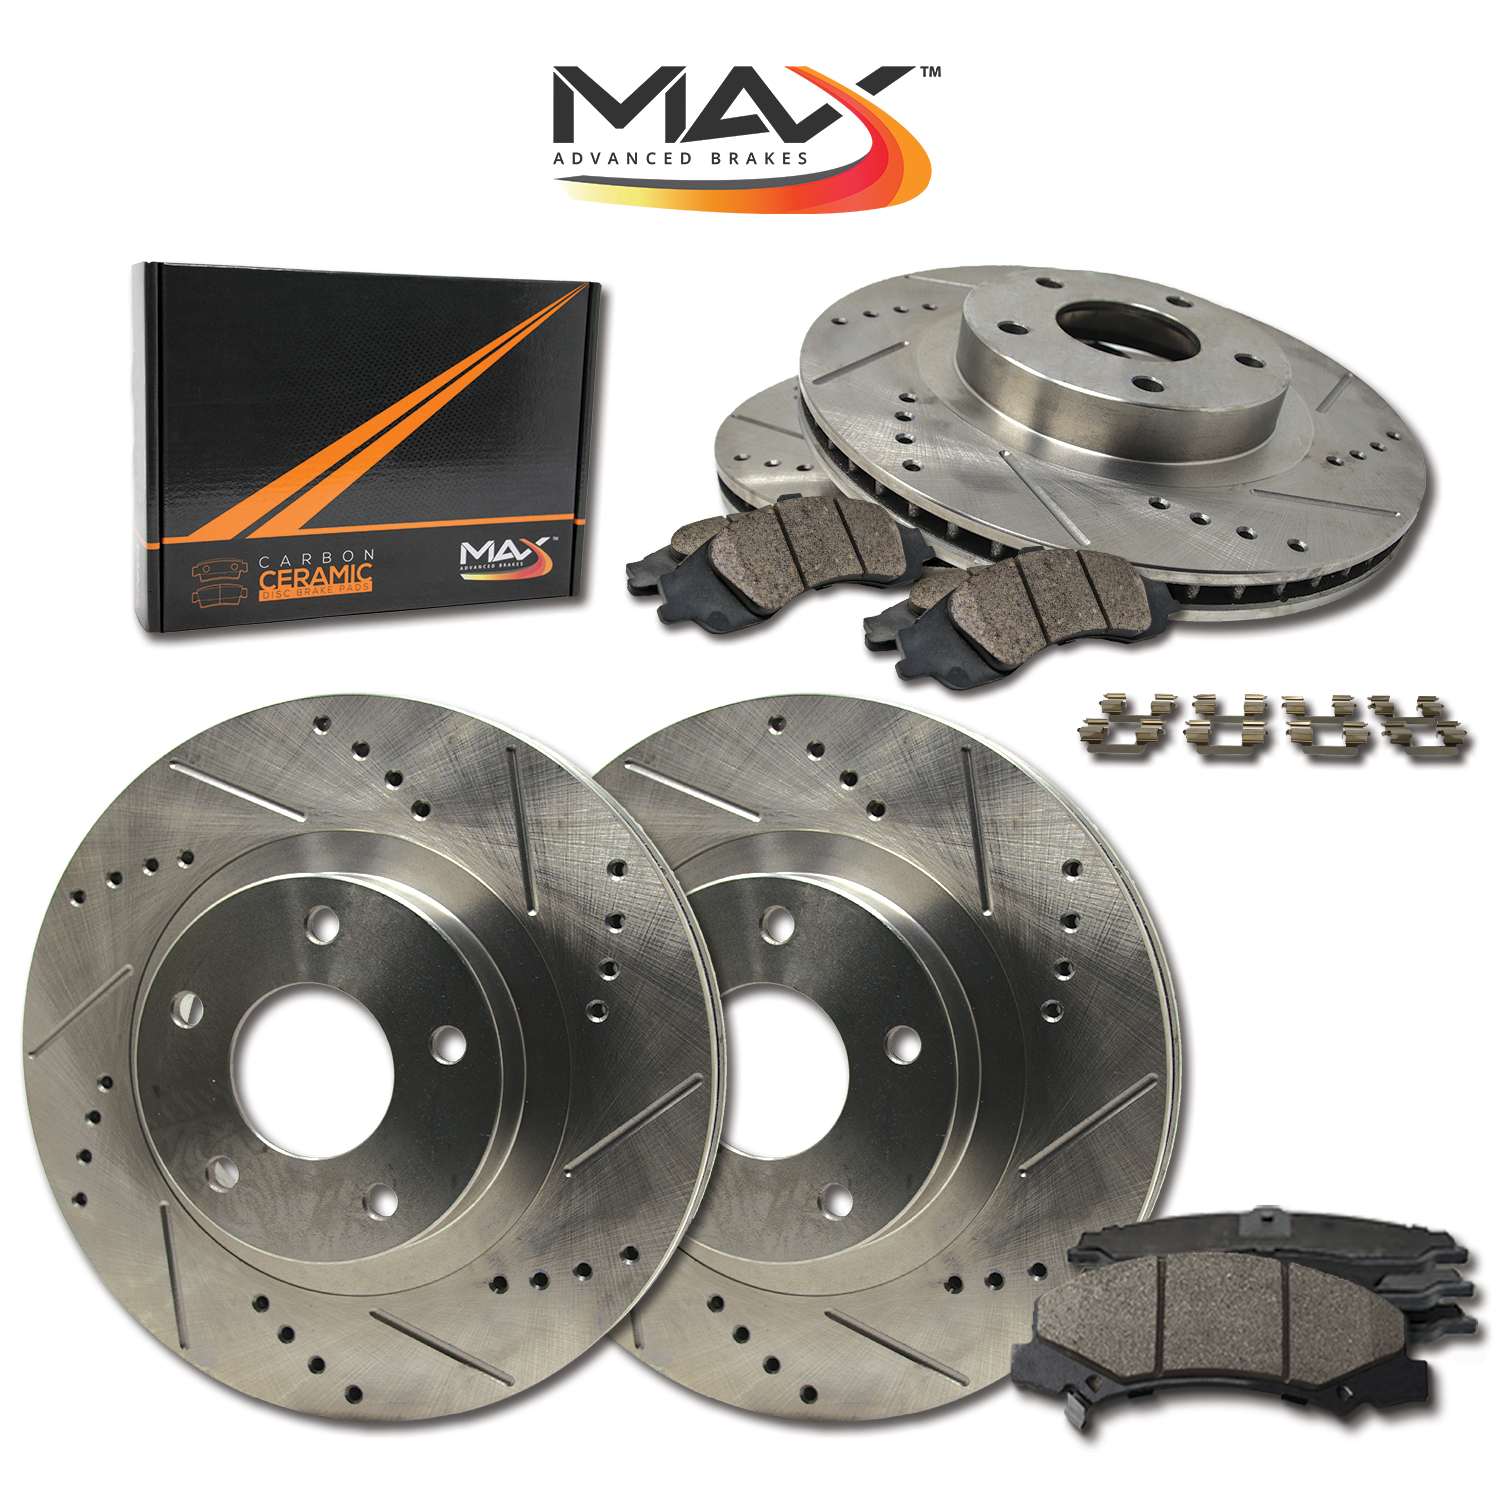 FRONT-REAR-Slotted-amp-Cross-Drilled-Rotors-with-Ceramic-Pads-amp-Hardware-Kit